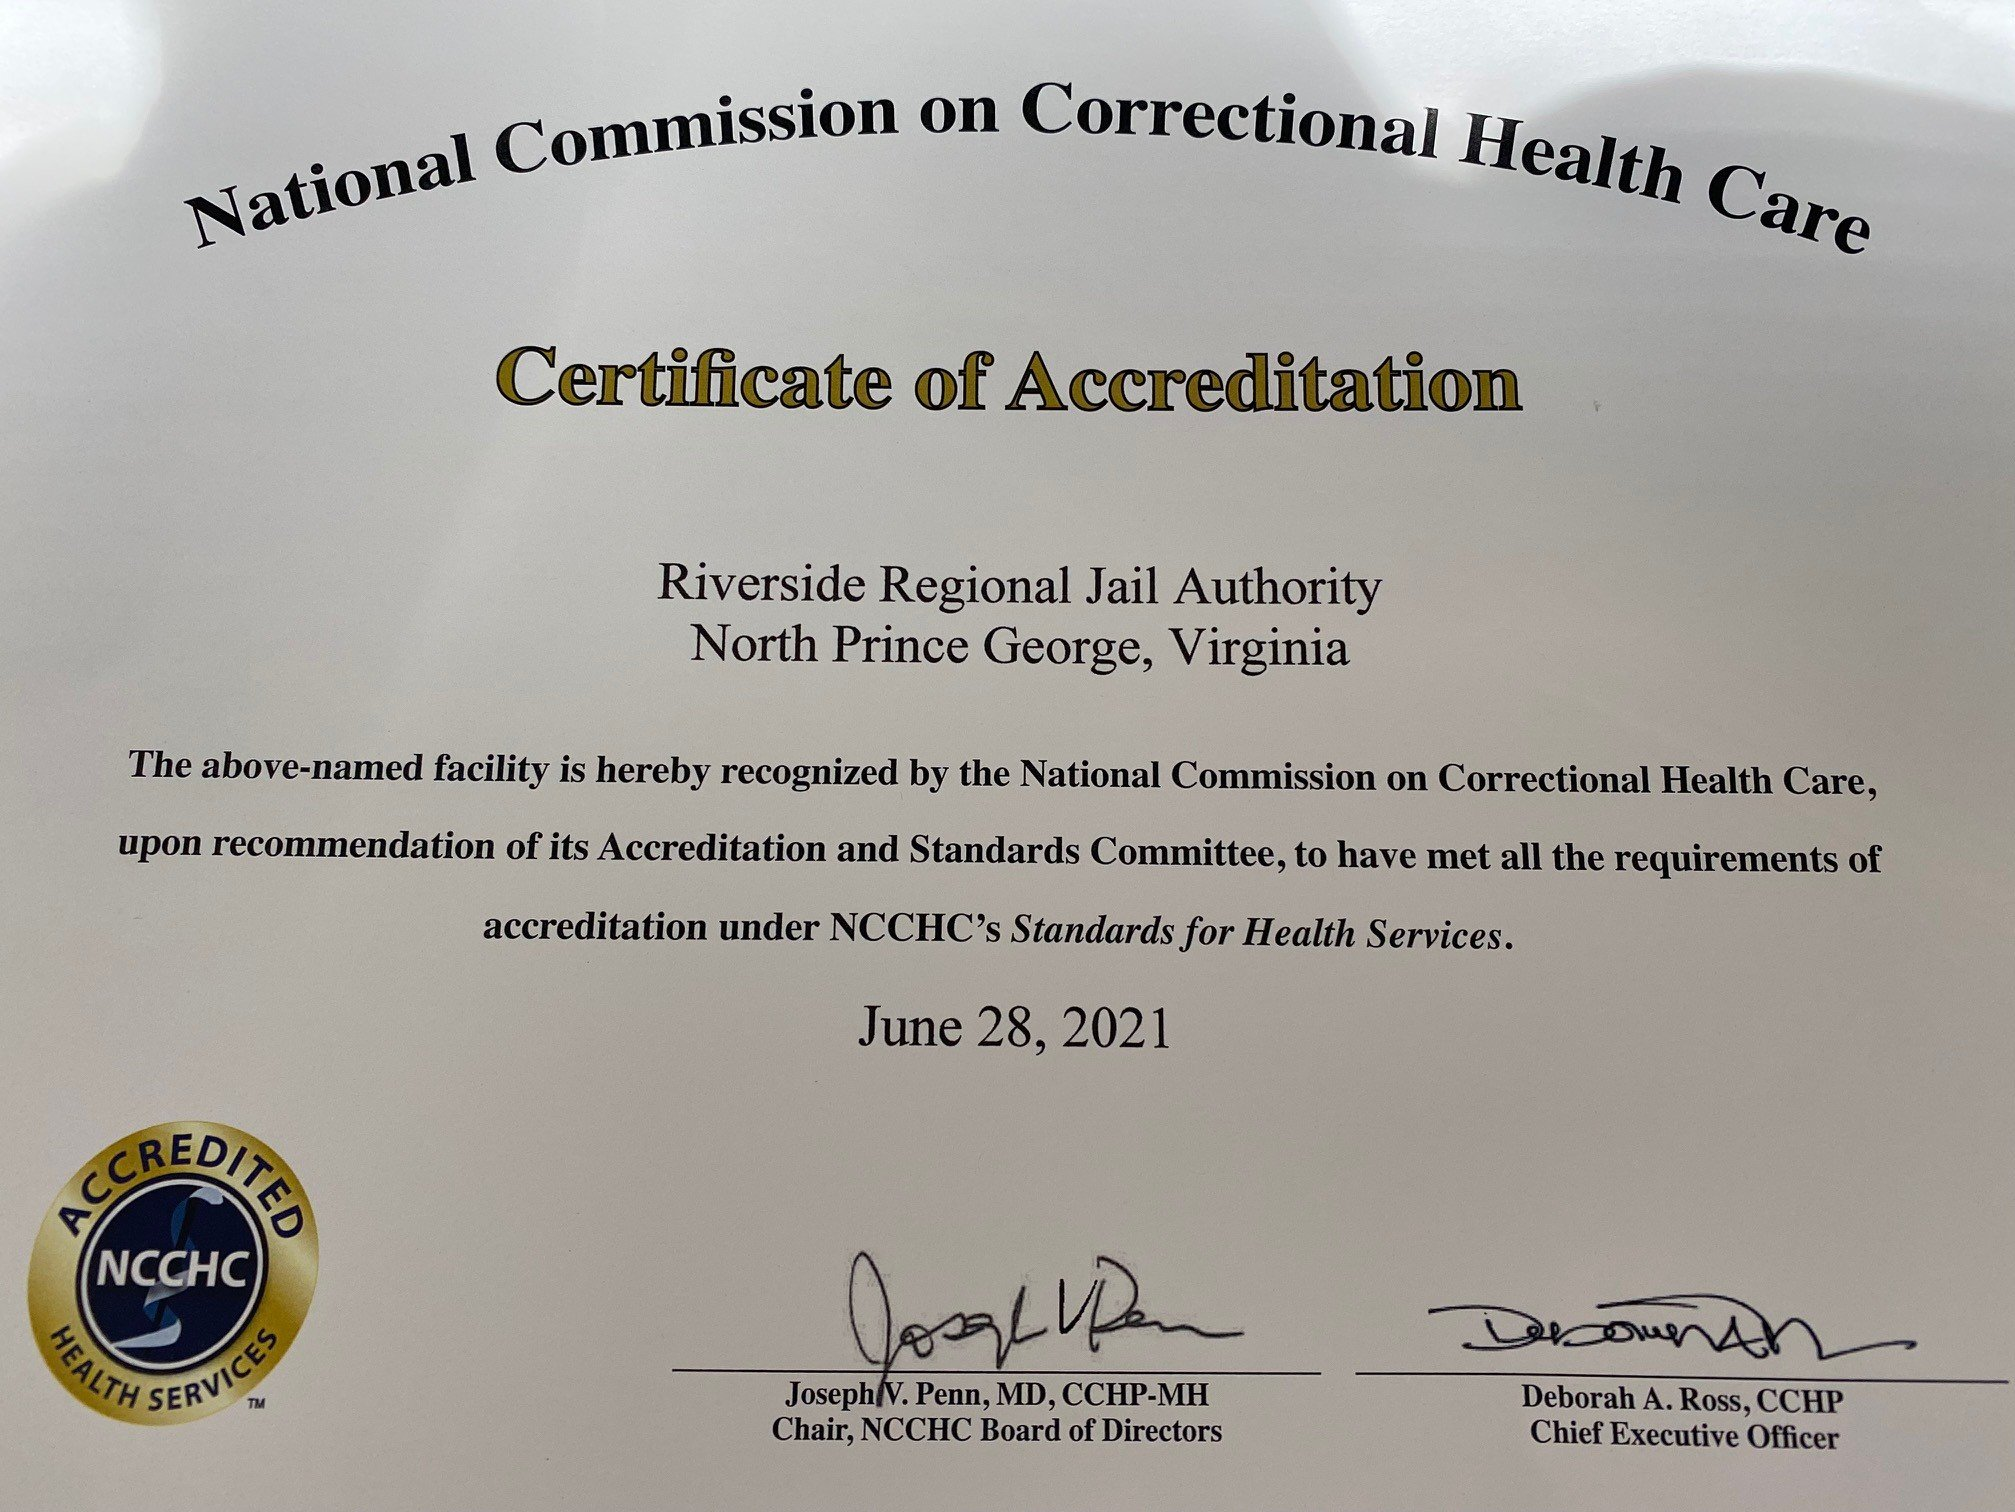 National Commission on Correctional Health Care Certificate